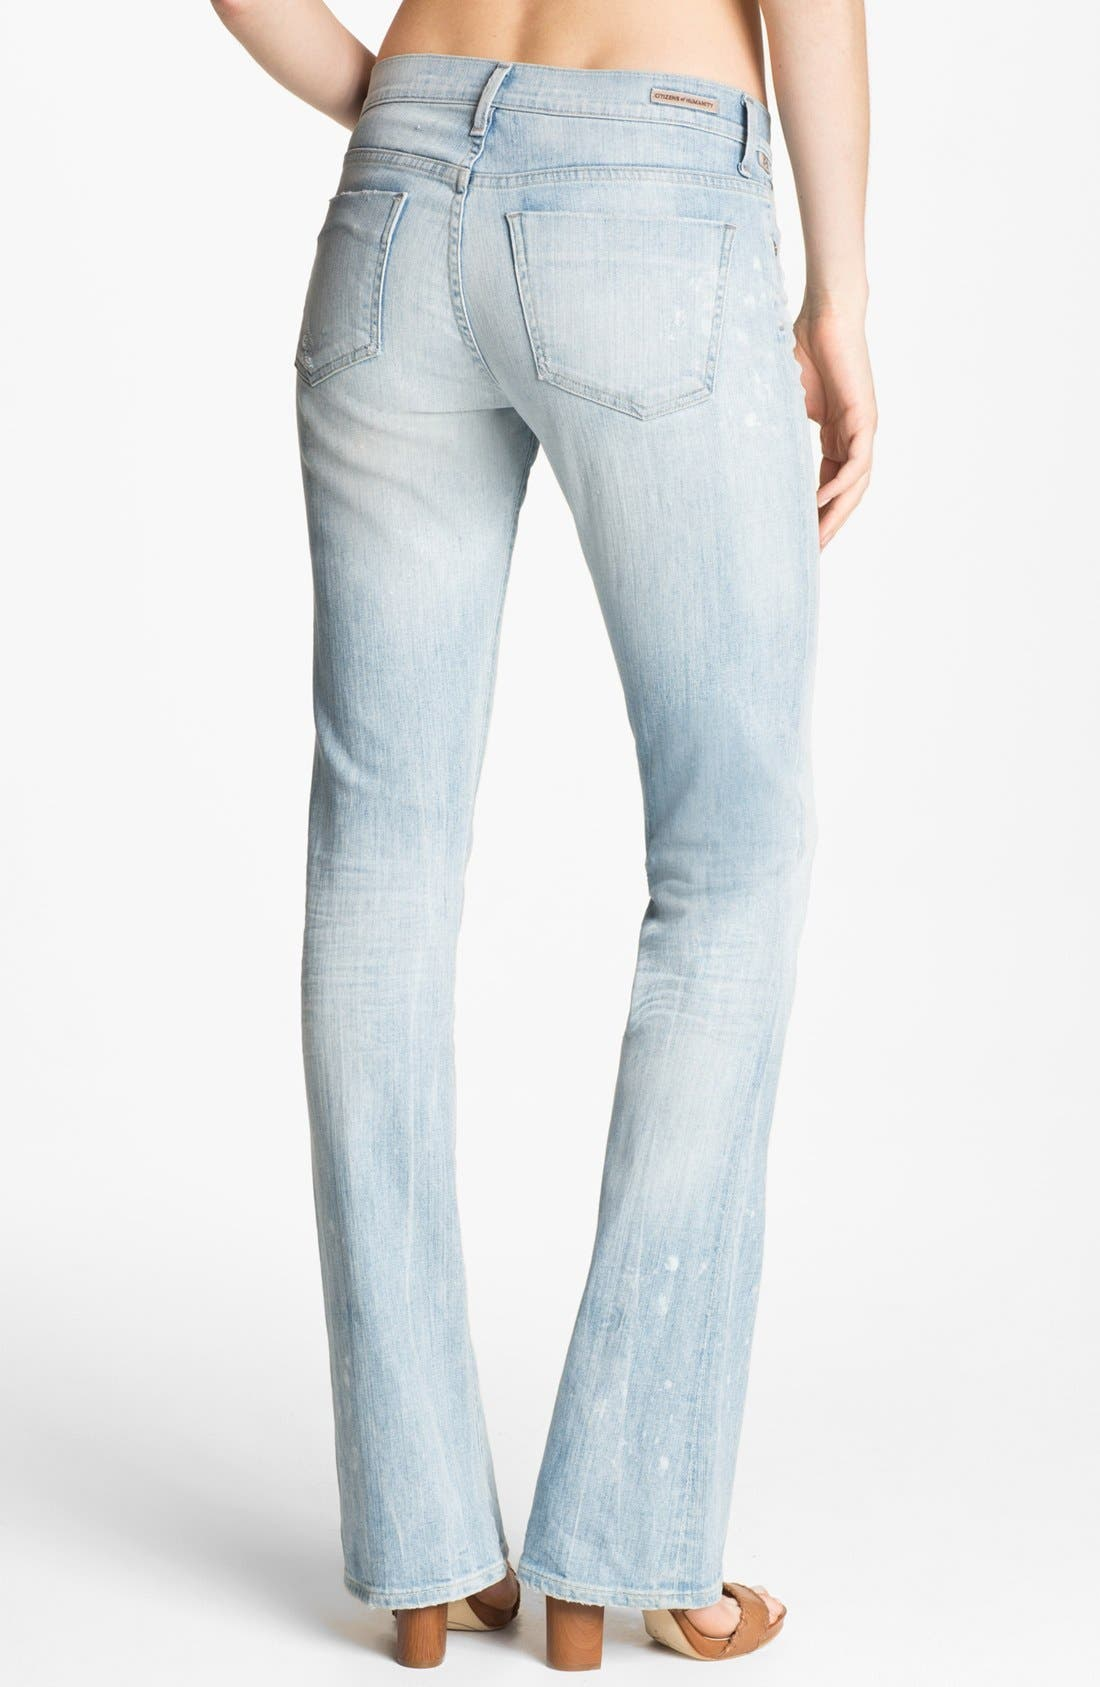 Alternate Image 2  - Citizens of Humanity 'Emanuelle' Slim Bootcut Jeans (Sorbet)